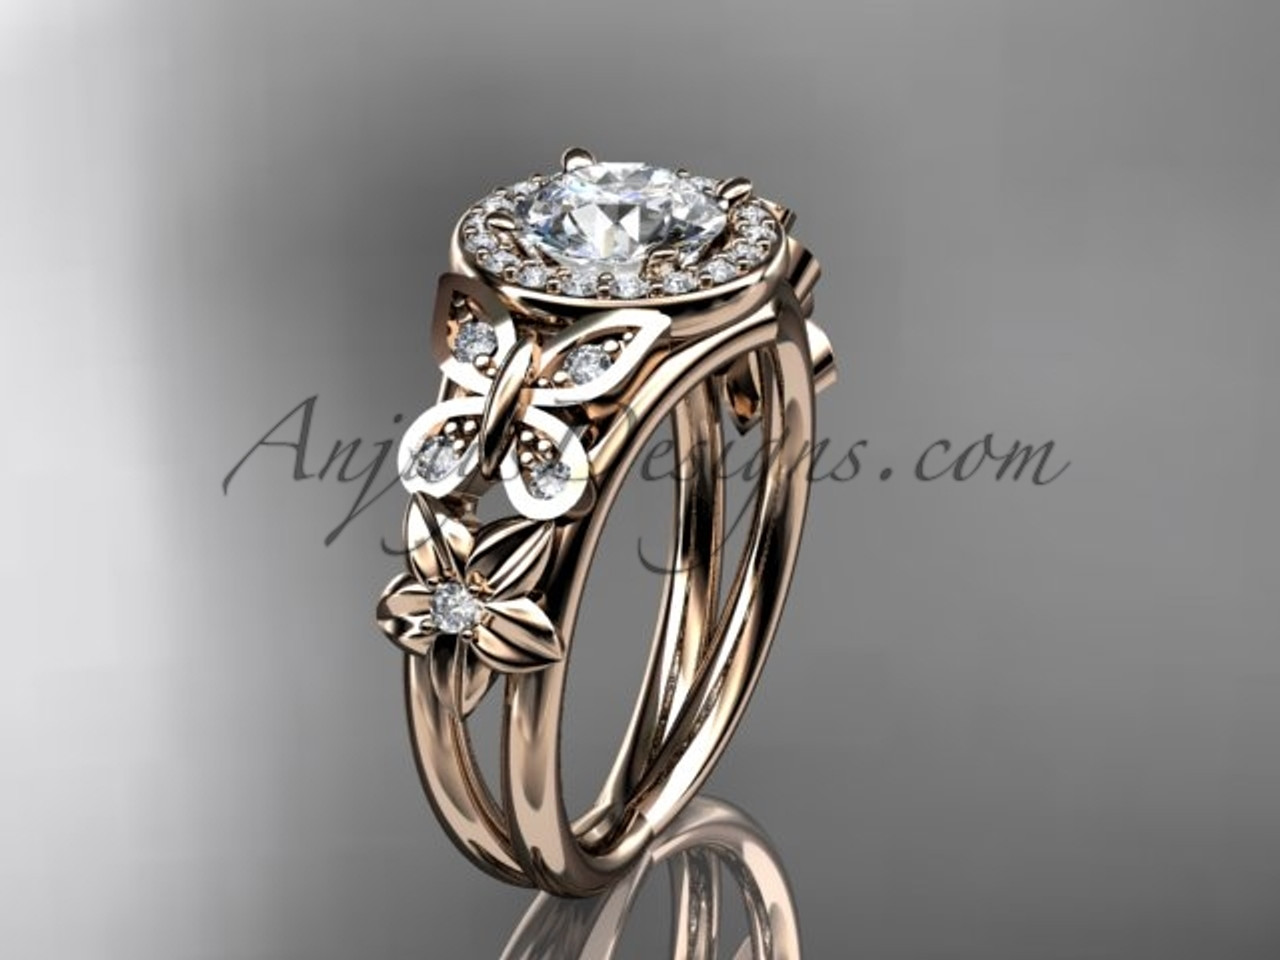 rings tone jewelry wedding two wish fabulous proposal c size ring rose gift cocktail party floral large gold diamond women flowers band s